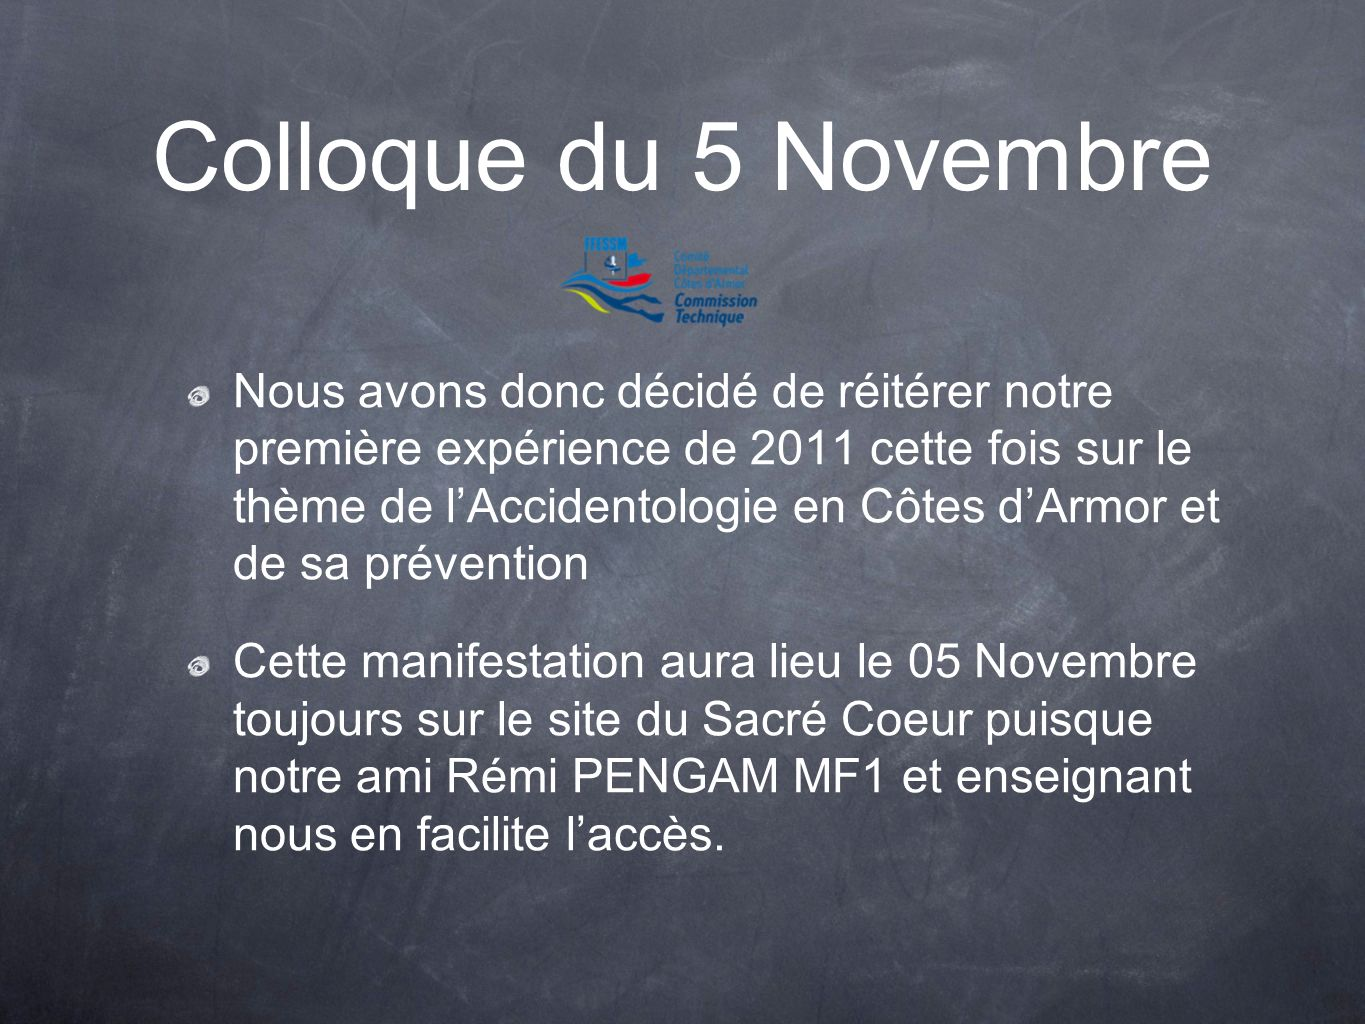 Colloque du 5 Novembre